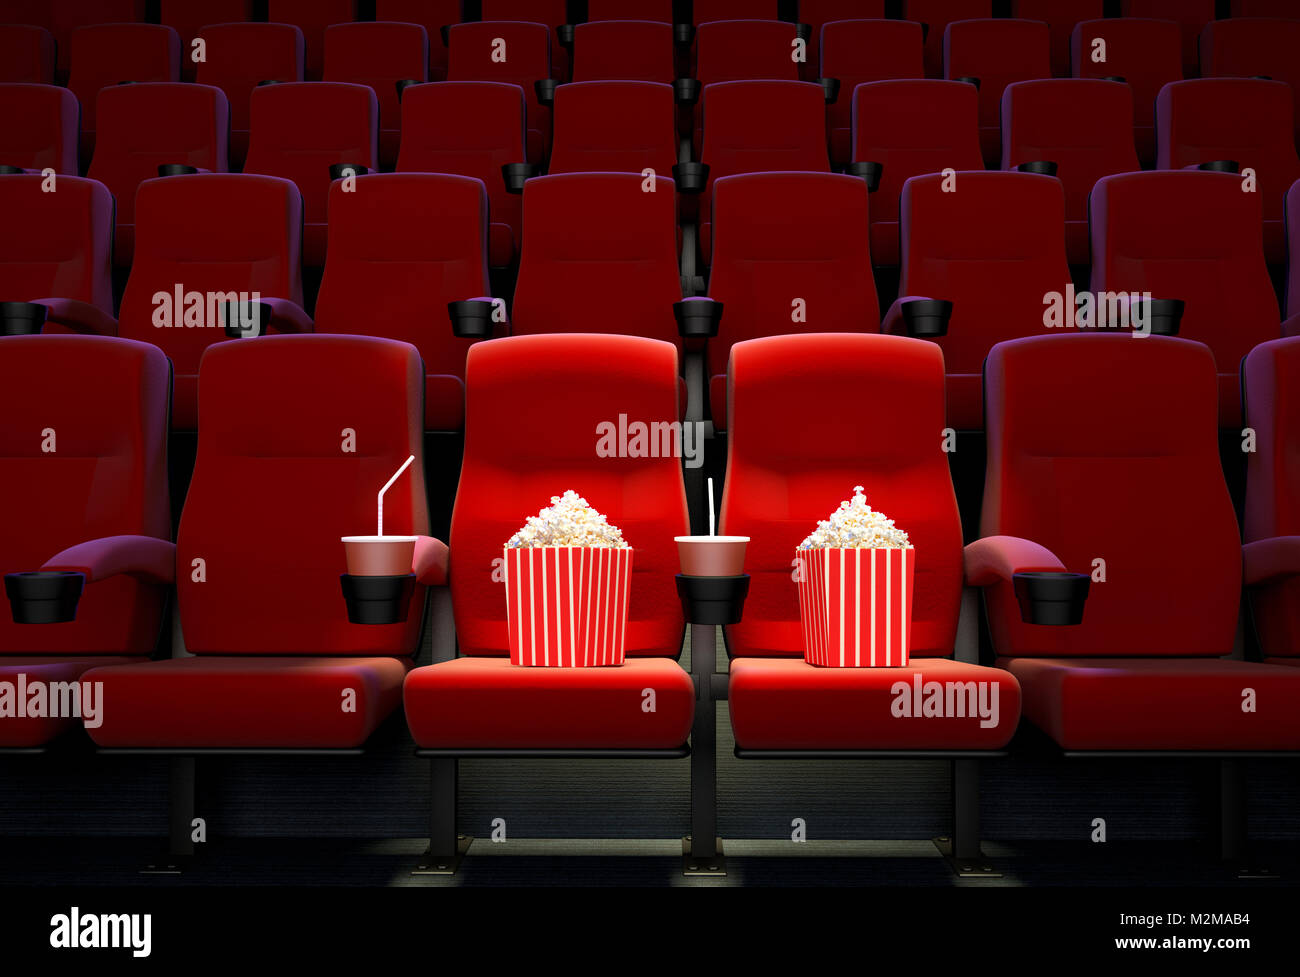 3D render representing the concept of reserved seats. - Stock Image